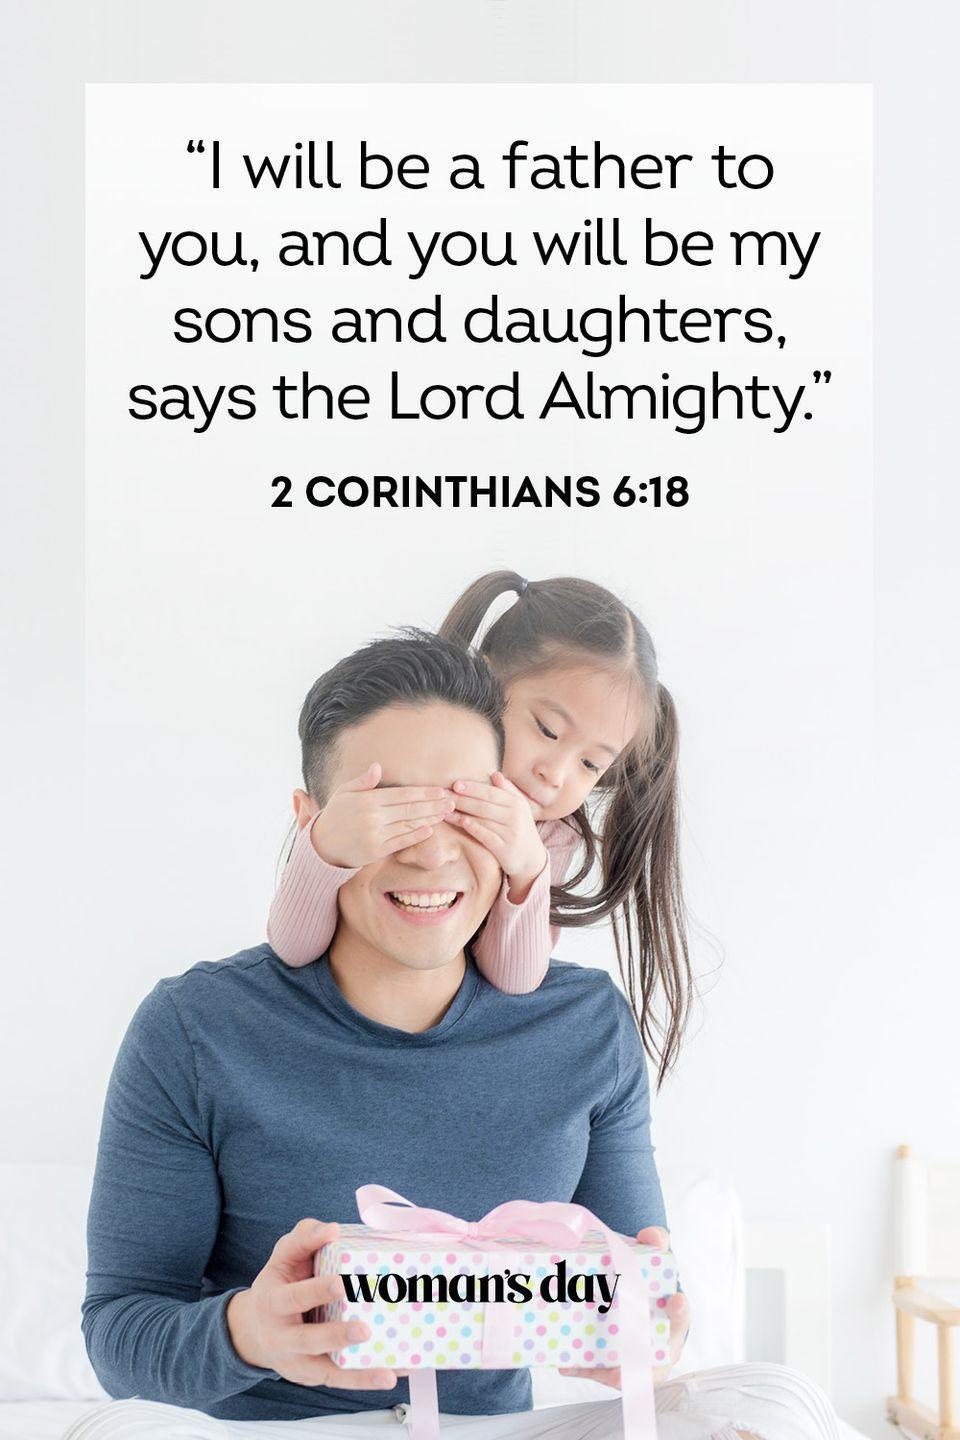 """<p>""""I will be a father to you, and you will be my sons and daughters, says the Lord Almighty.""""</p><p><strong>The Good News: </strong>Don't forget that we're all God's children, this Father's Day. The Lord is a father to everyone, including your own dad.</p>"""